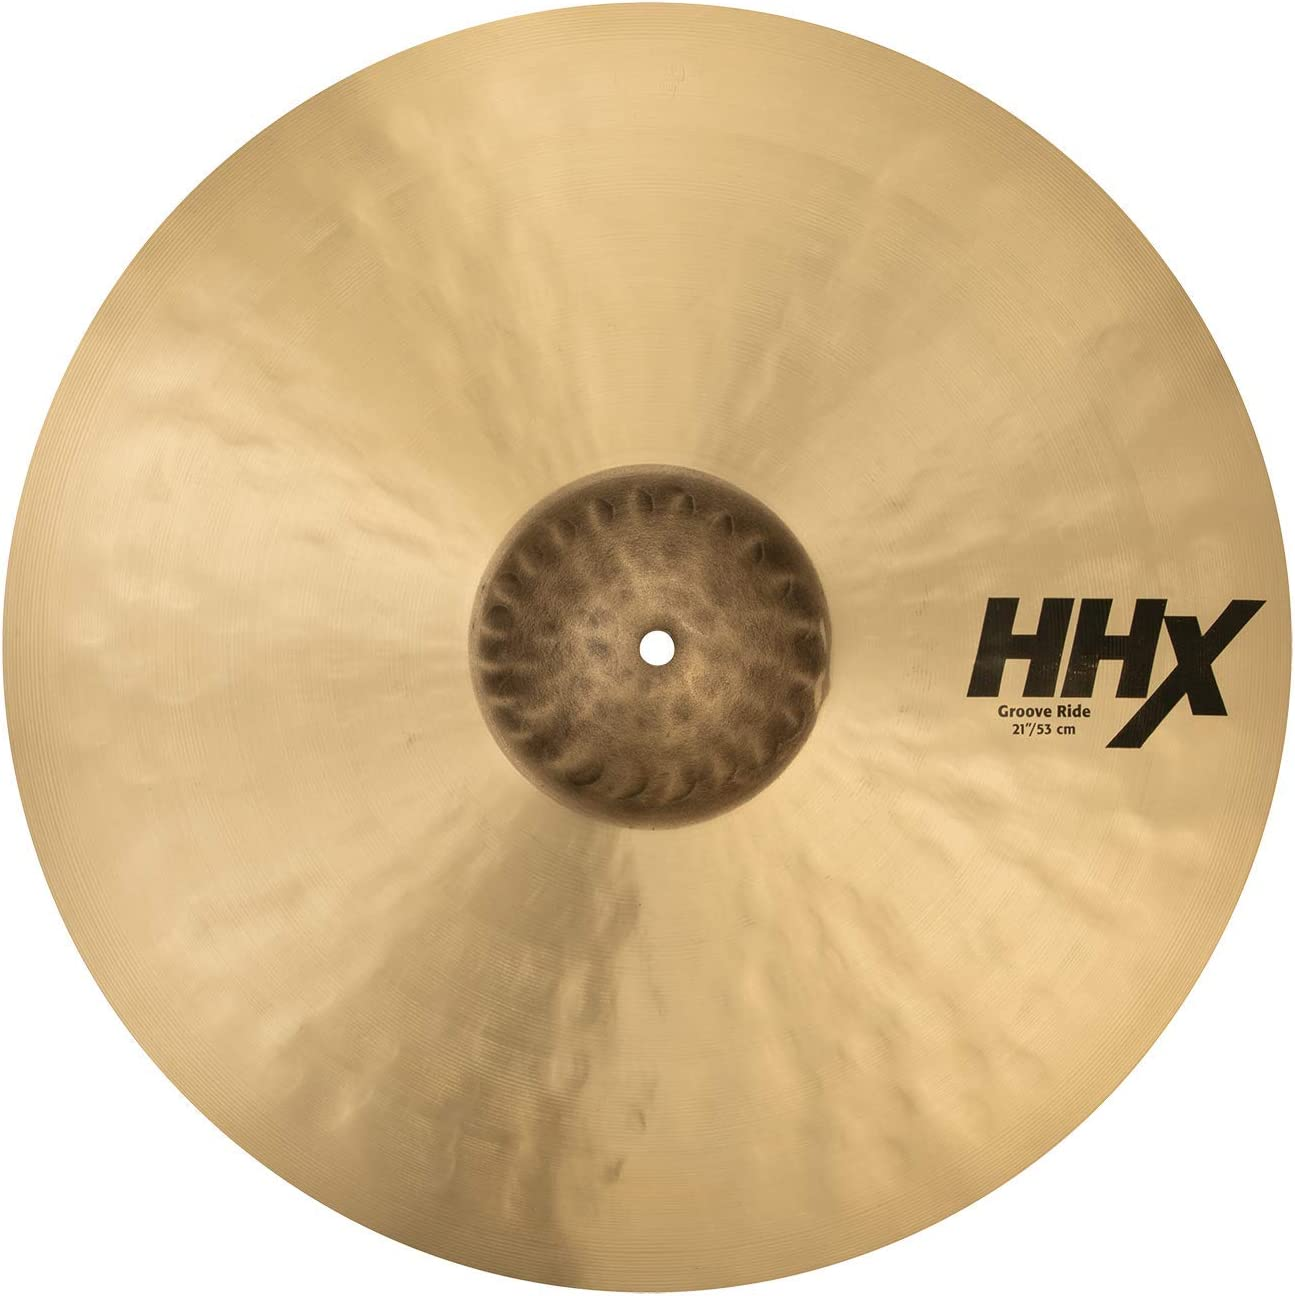 Best Ride Cymbal for Funk